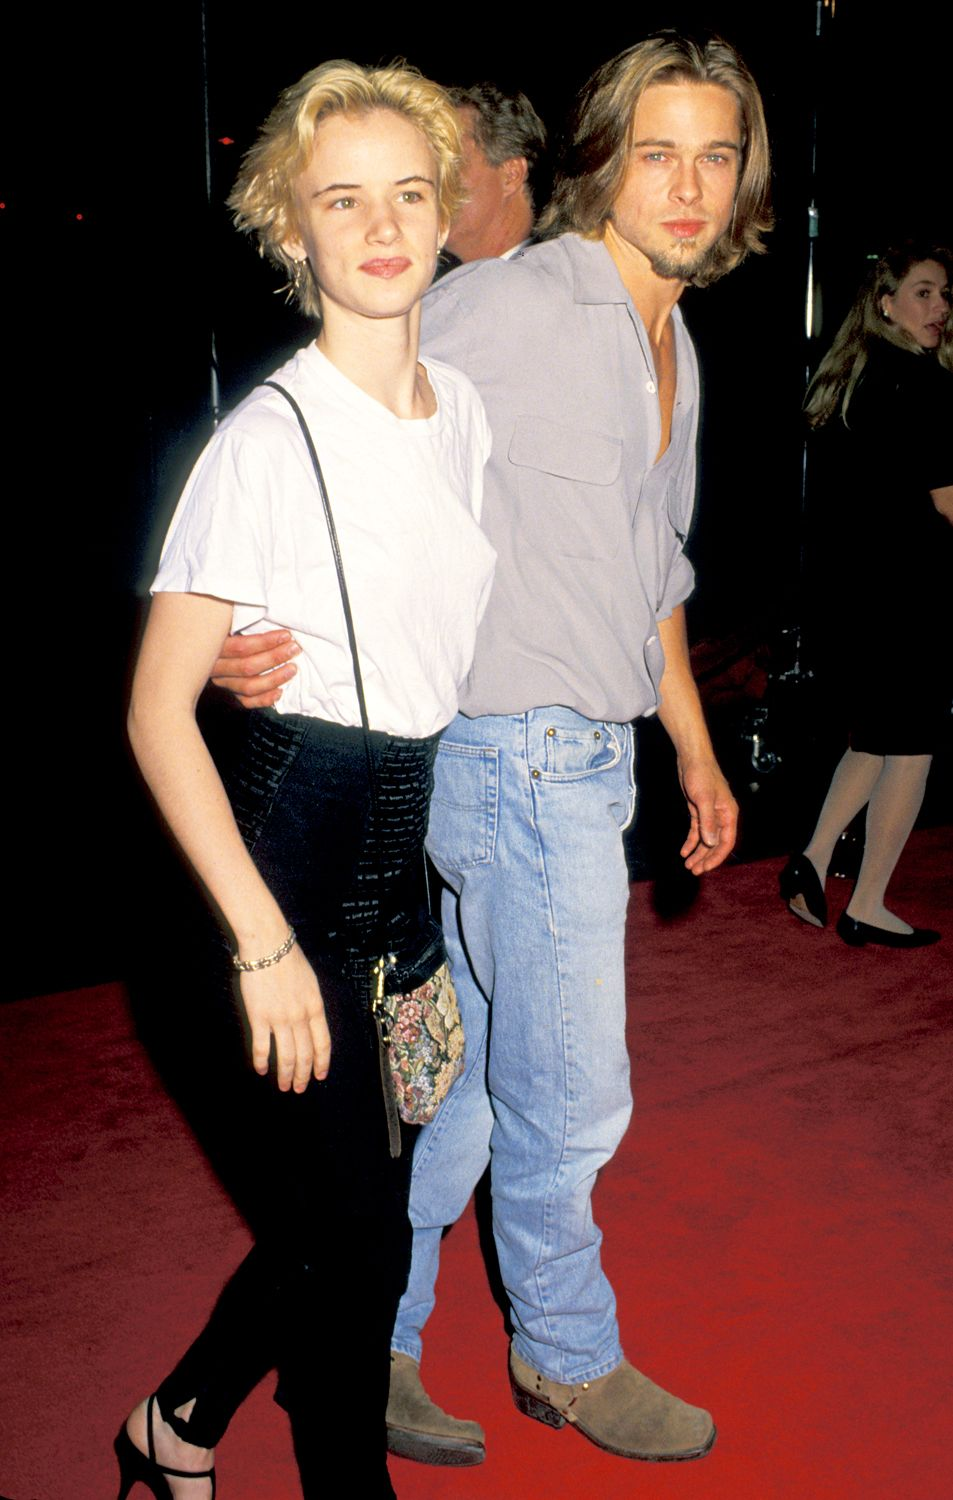 Fashion Trends From the '90s | POPSUGAR Fashion